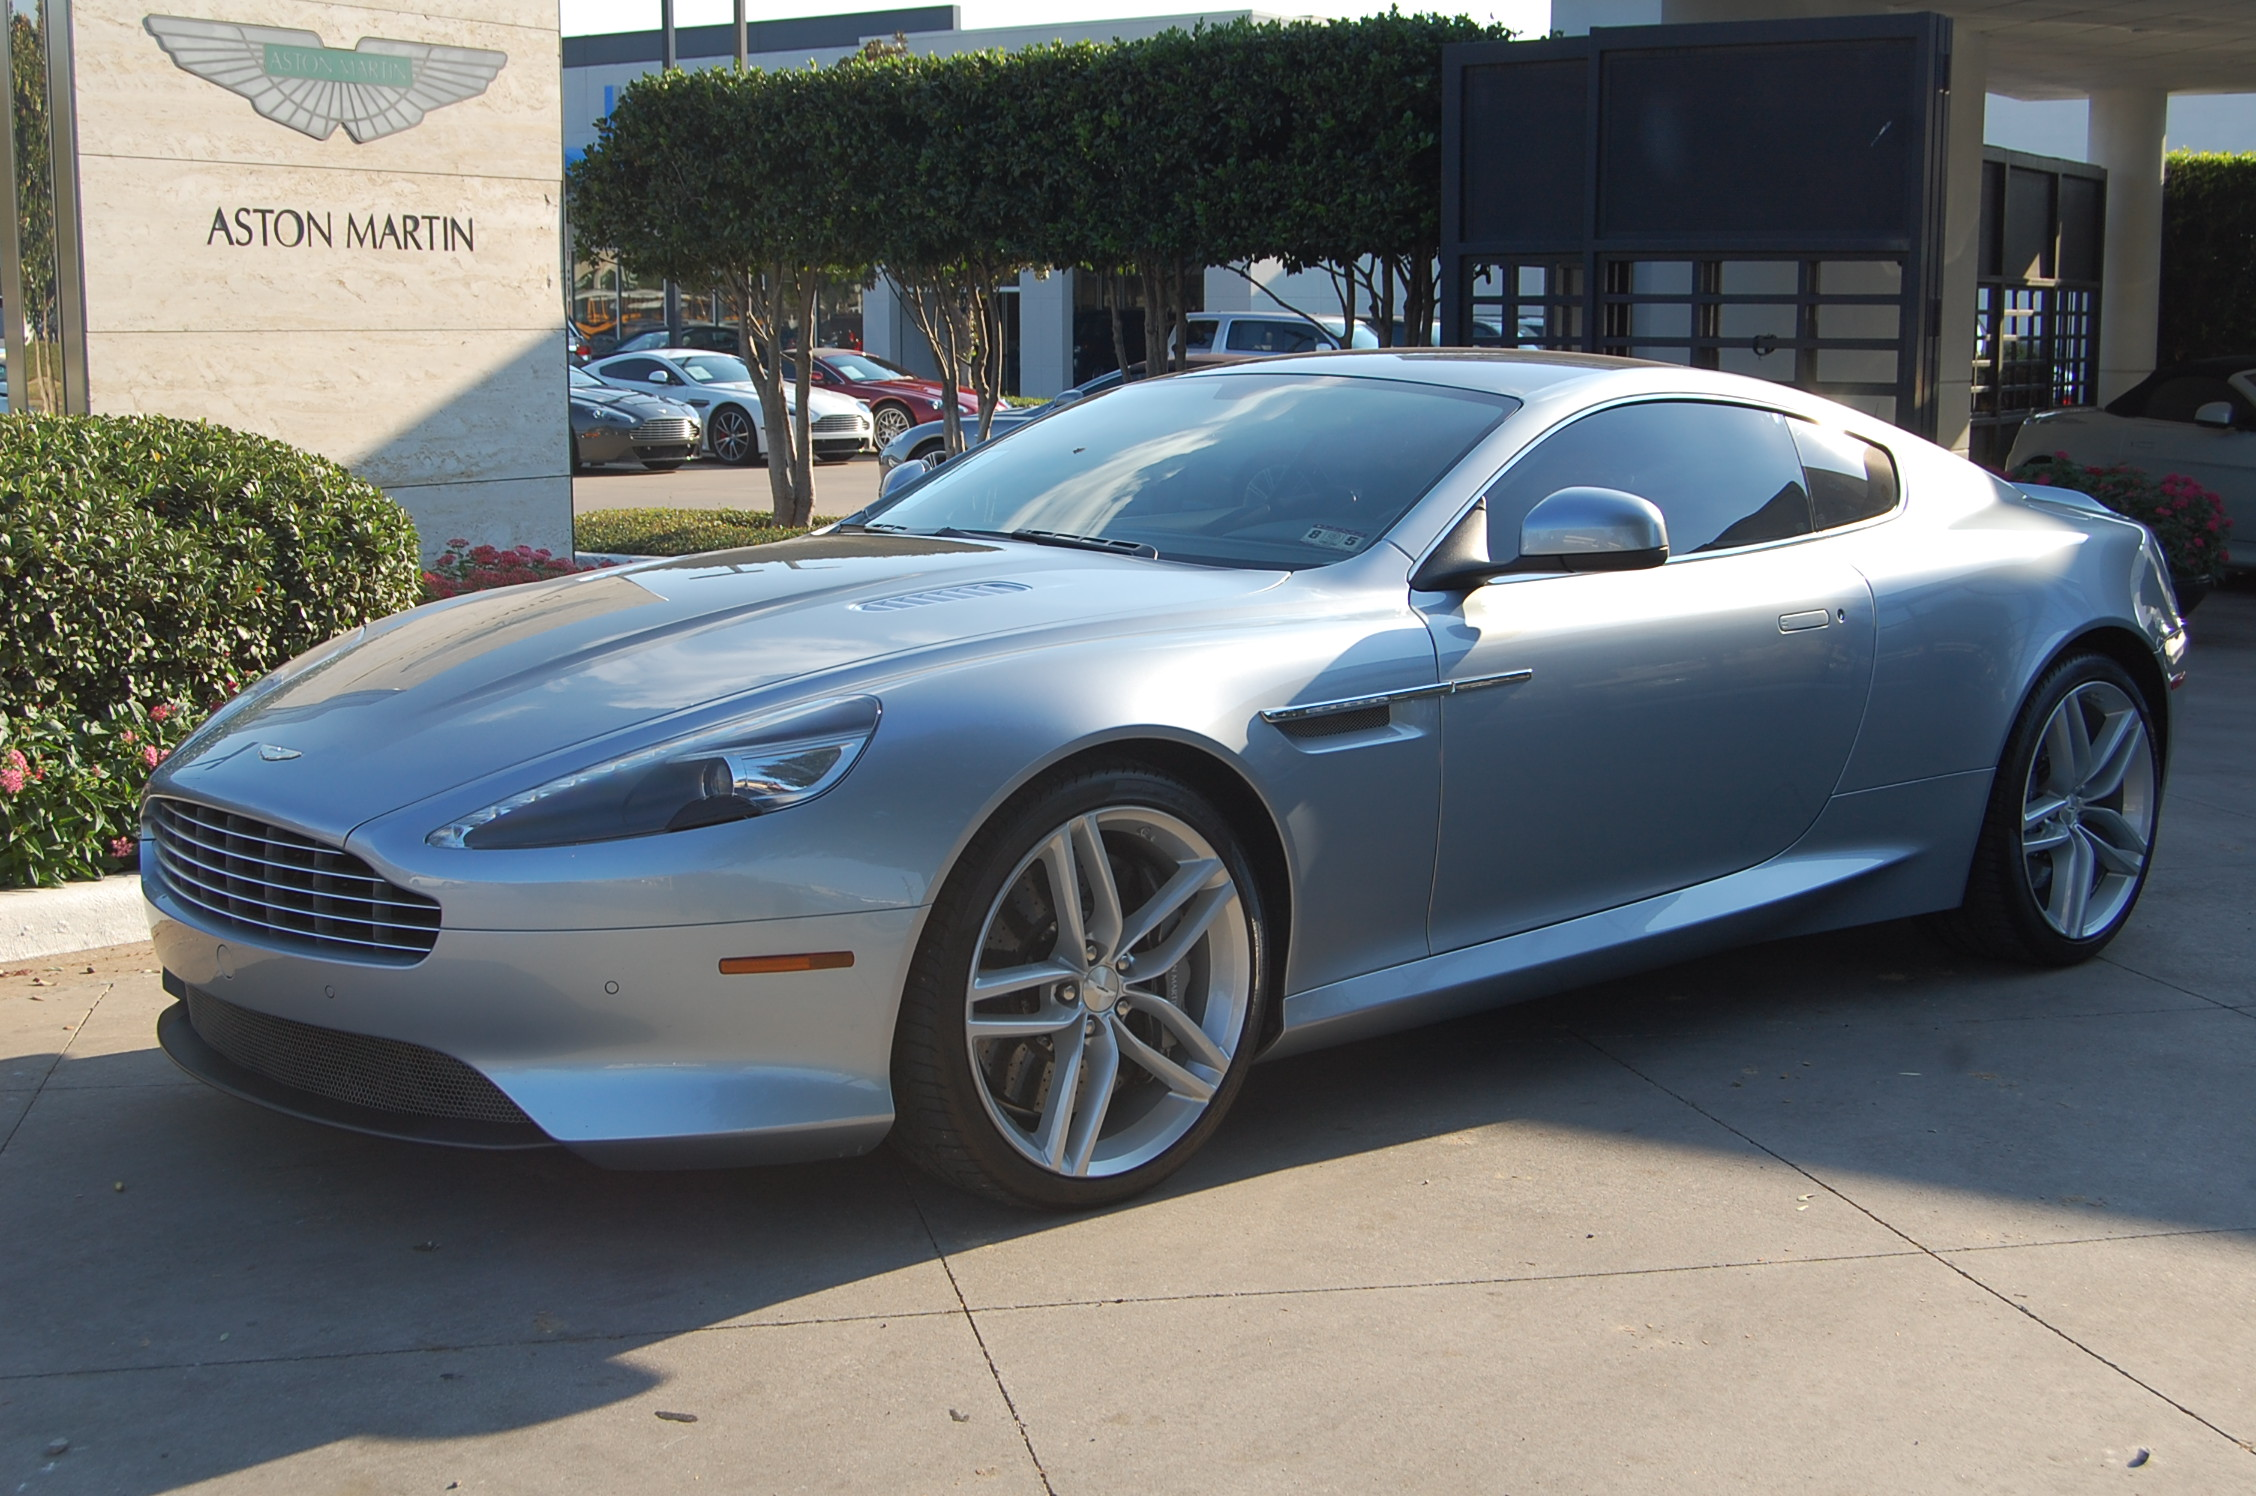 aston martin db9 coupe 2009 pictures #14